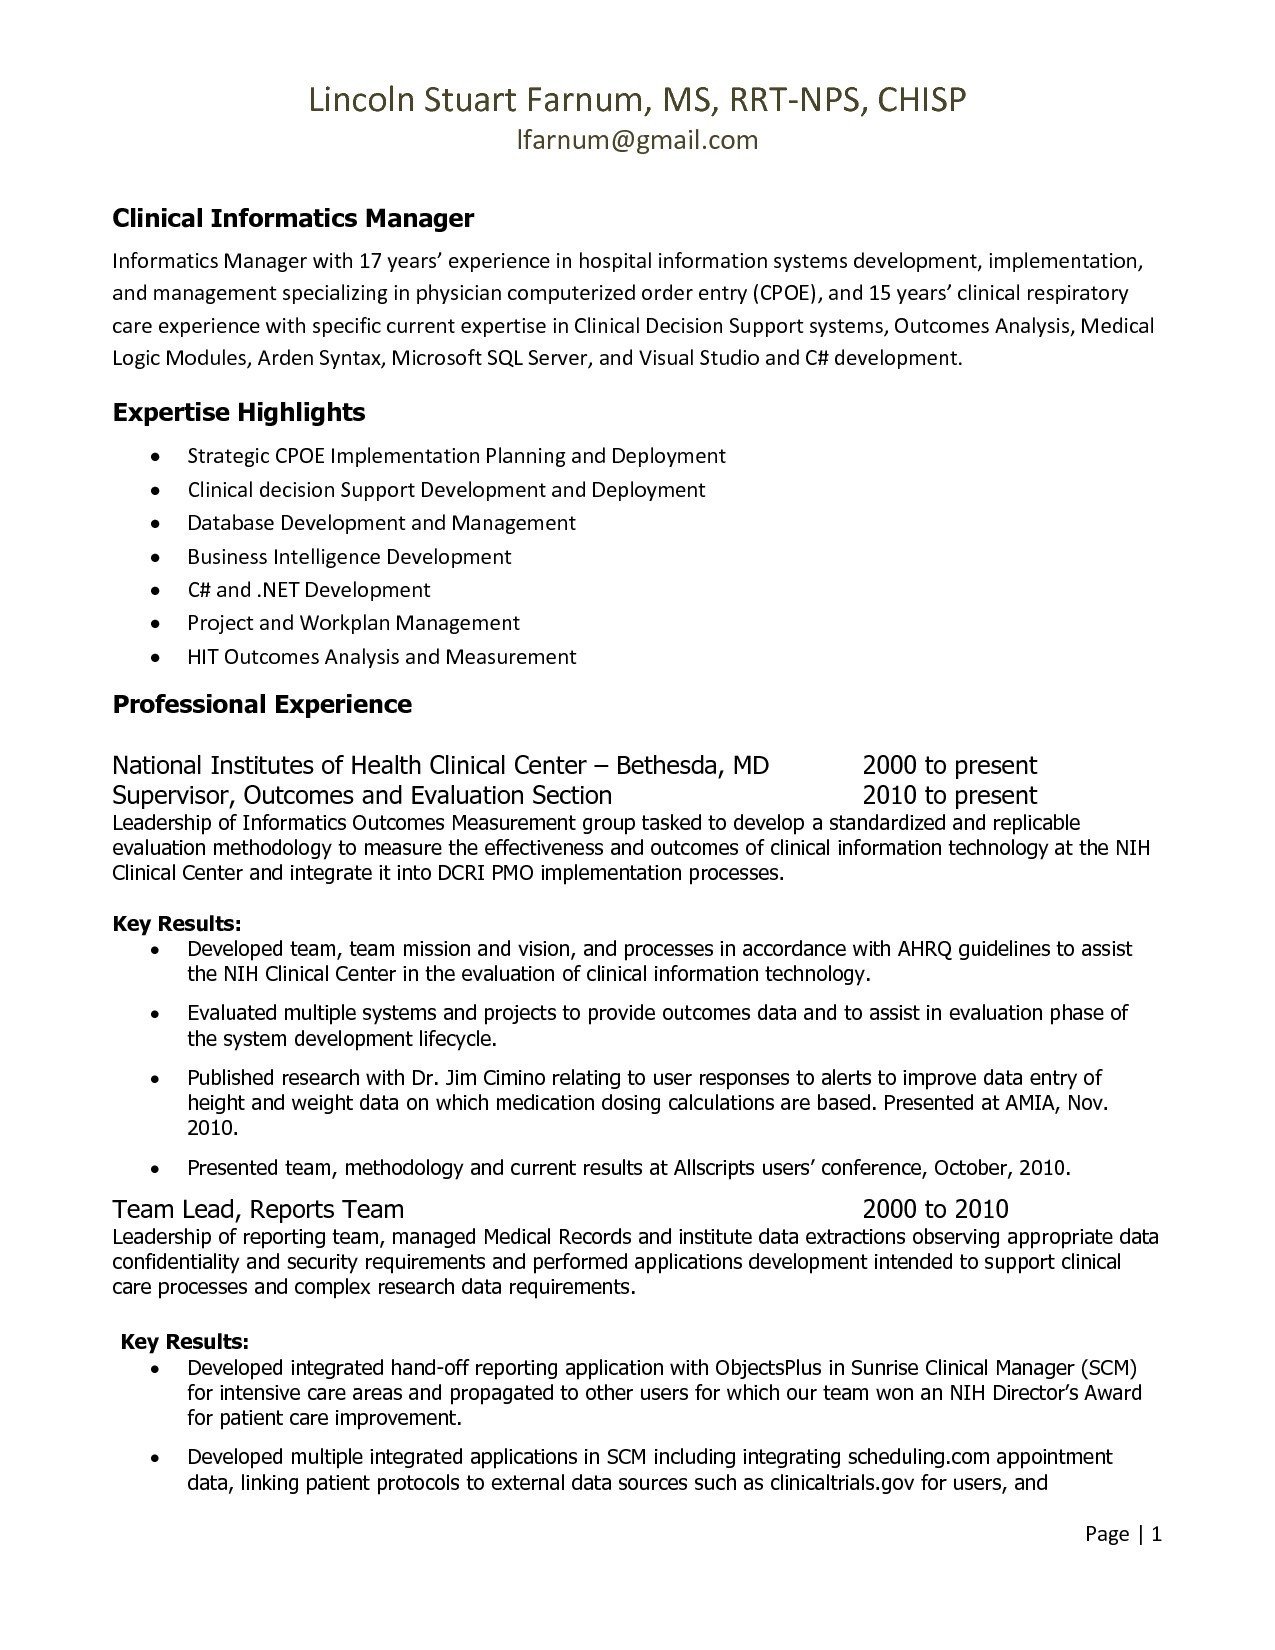 sample resumes for respiratory therapist Collection-Respiratory therapist Resume Objective Examples Reference Sample Resume Objectives for Respiratory therapist New Respiratory 18-i